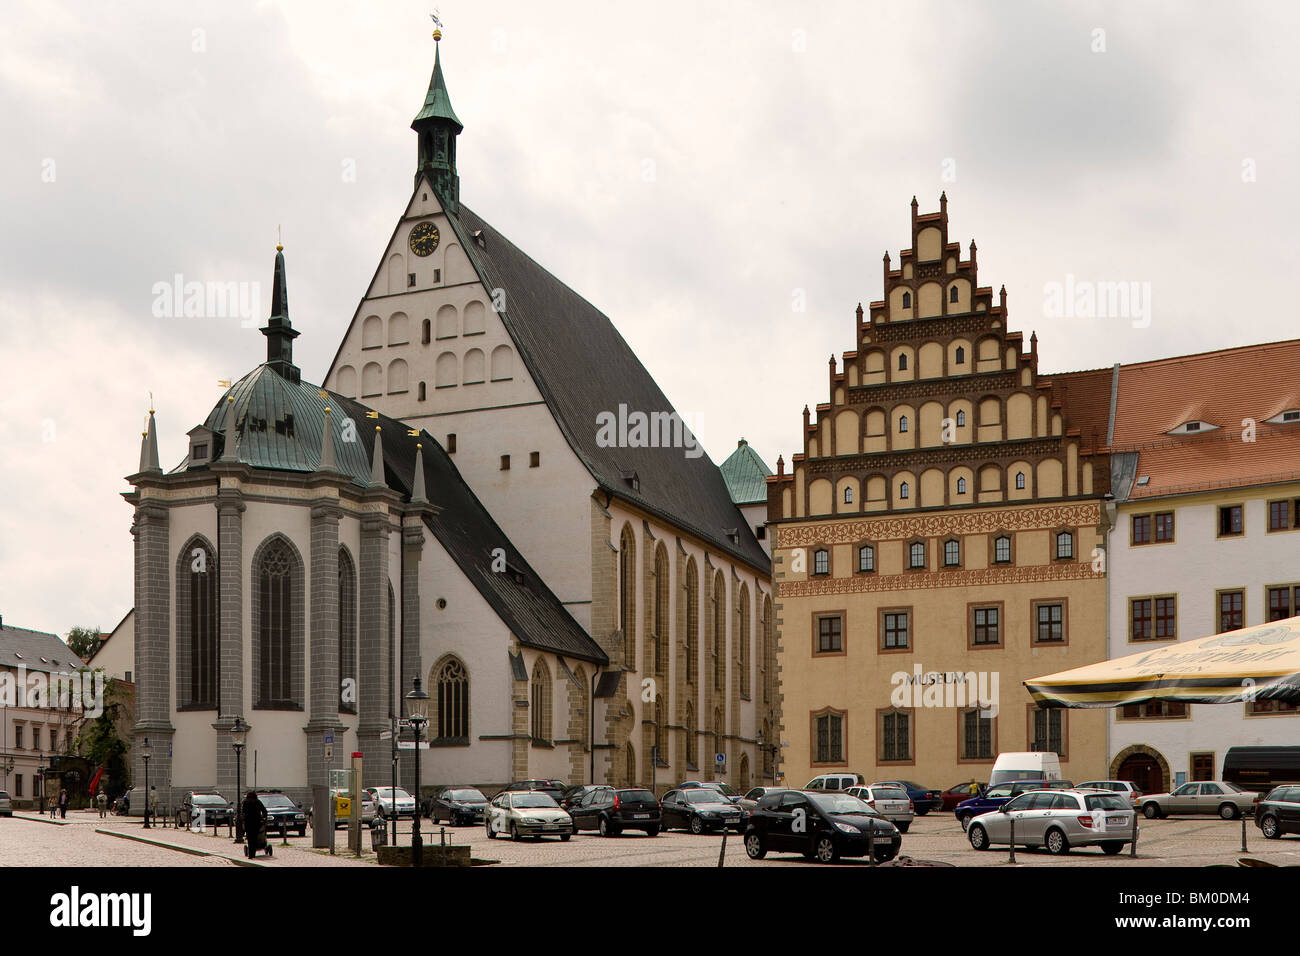 Cathedral St. Marien seen from the Untermarkt, Freiberg, Saxony, Germany, Europe - Stock Image